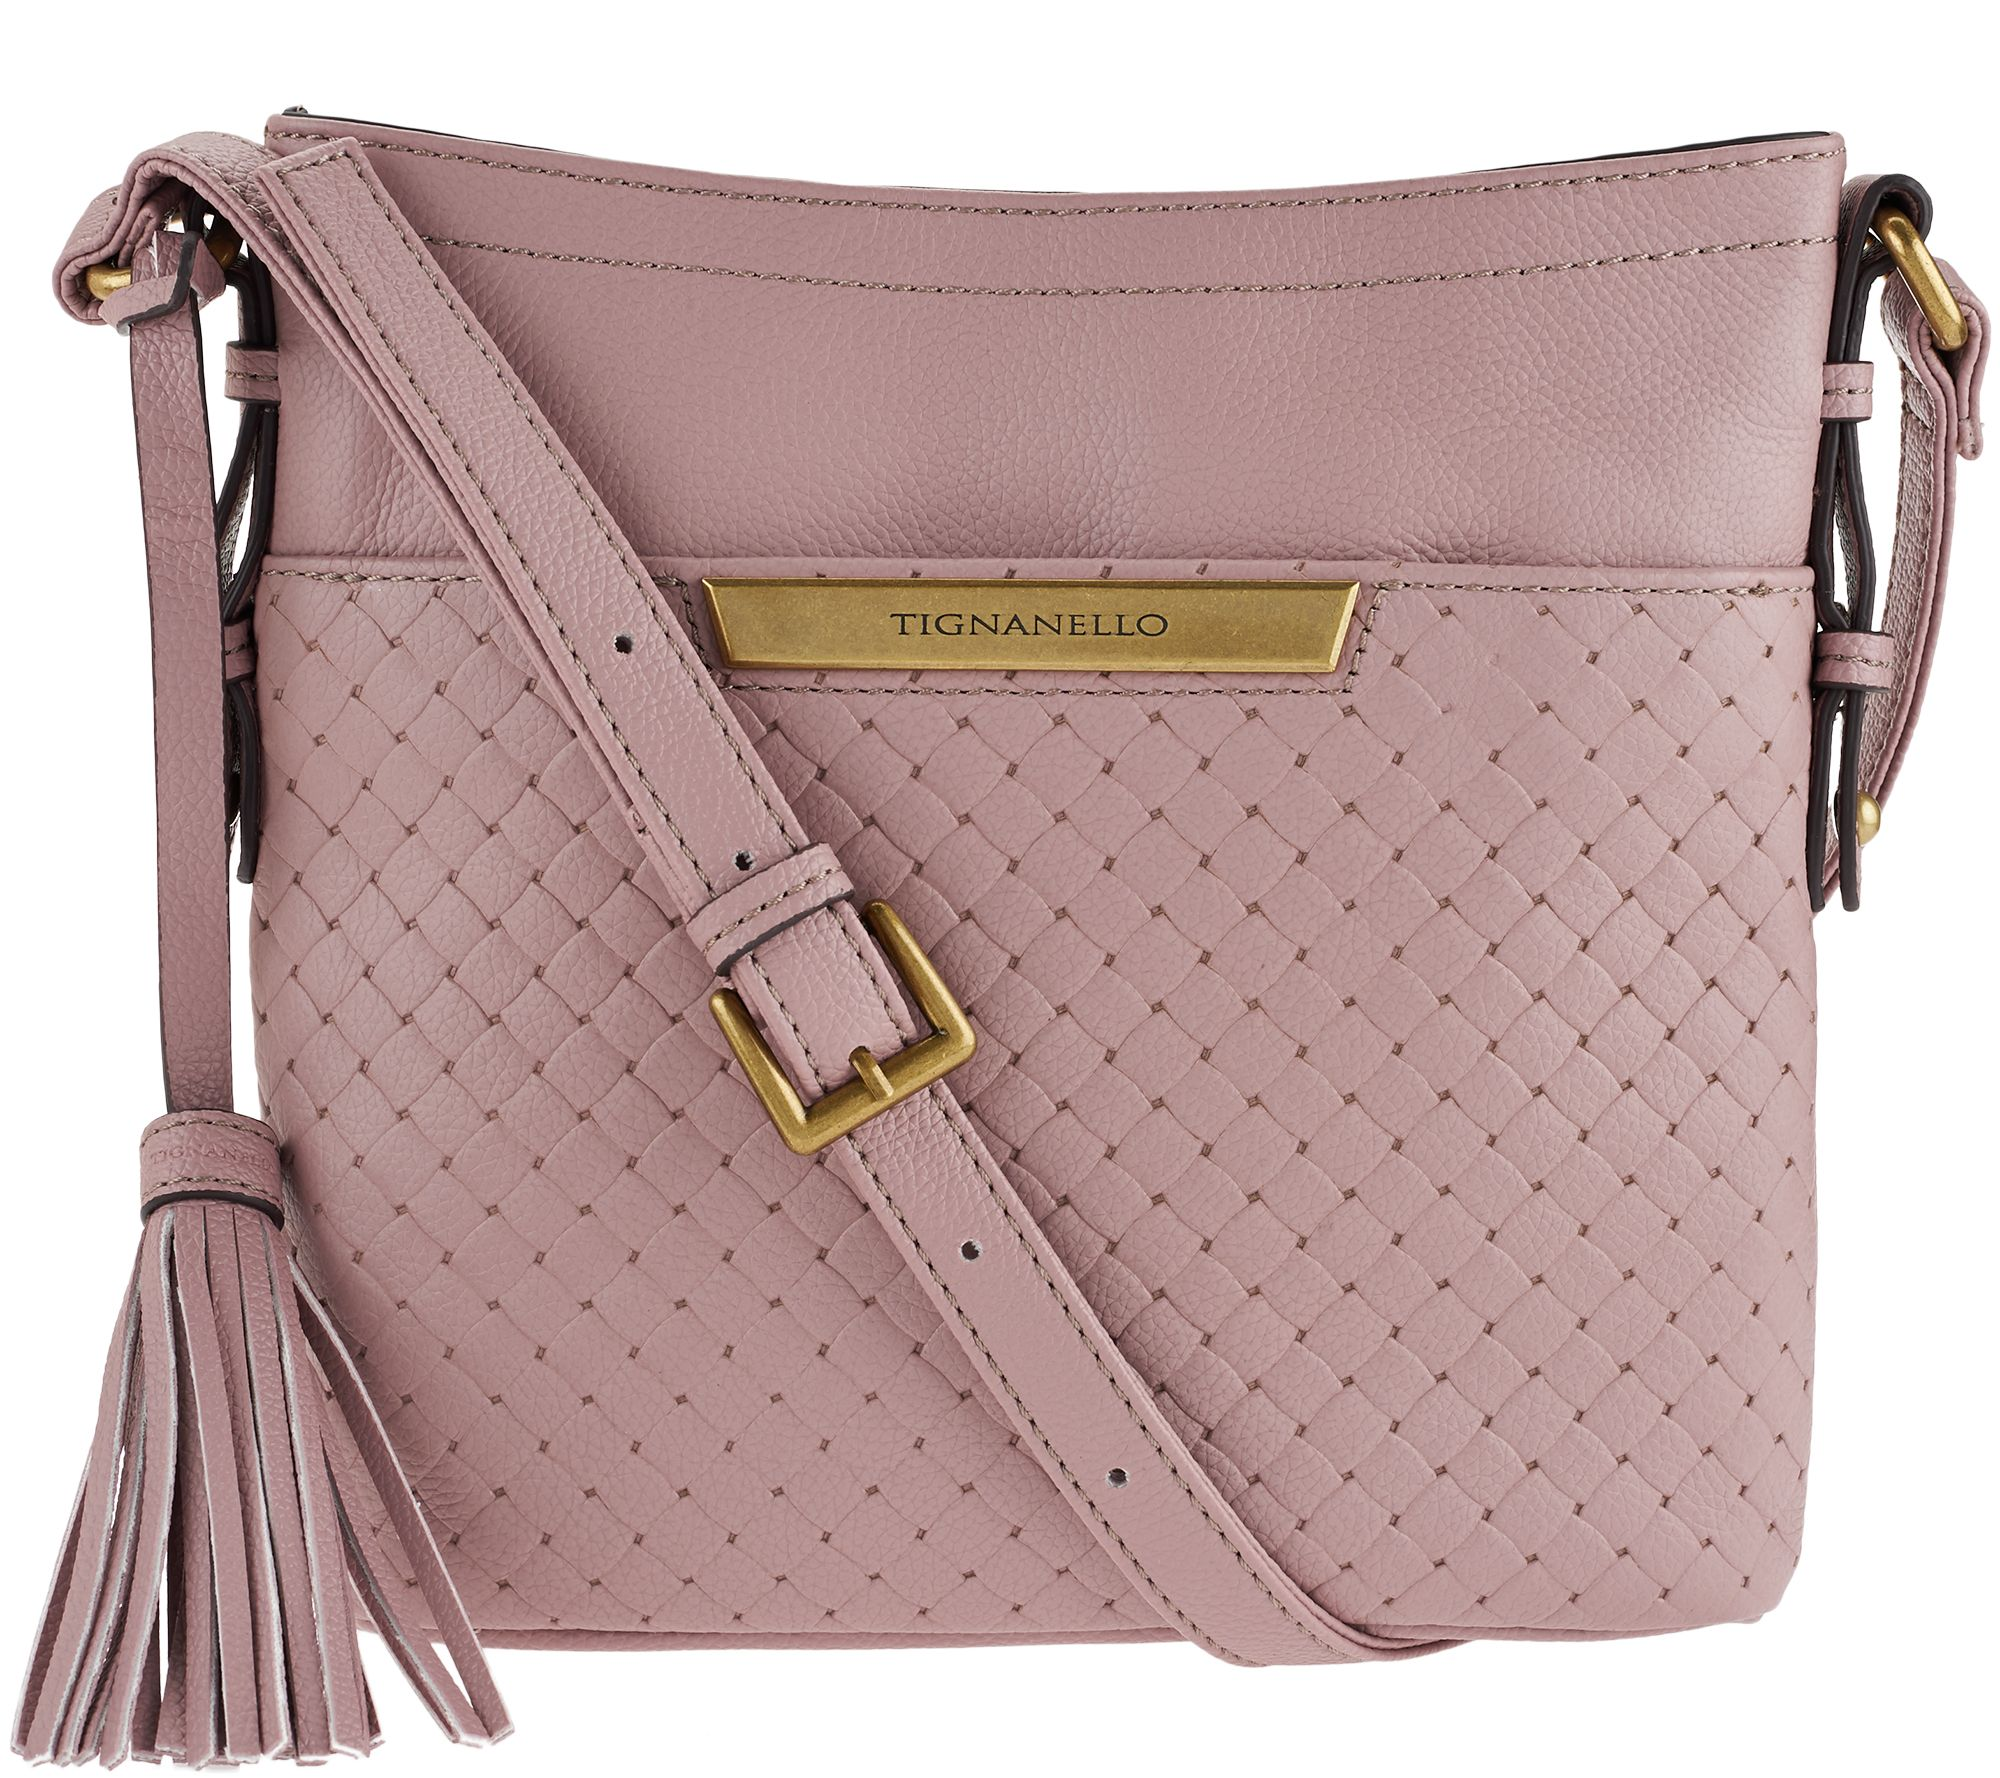 Tignanello Pebble Leather Embossed Weave Rfid Crossbody Bag Page 1 Qvc